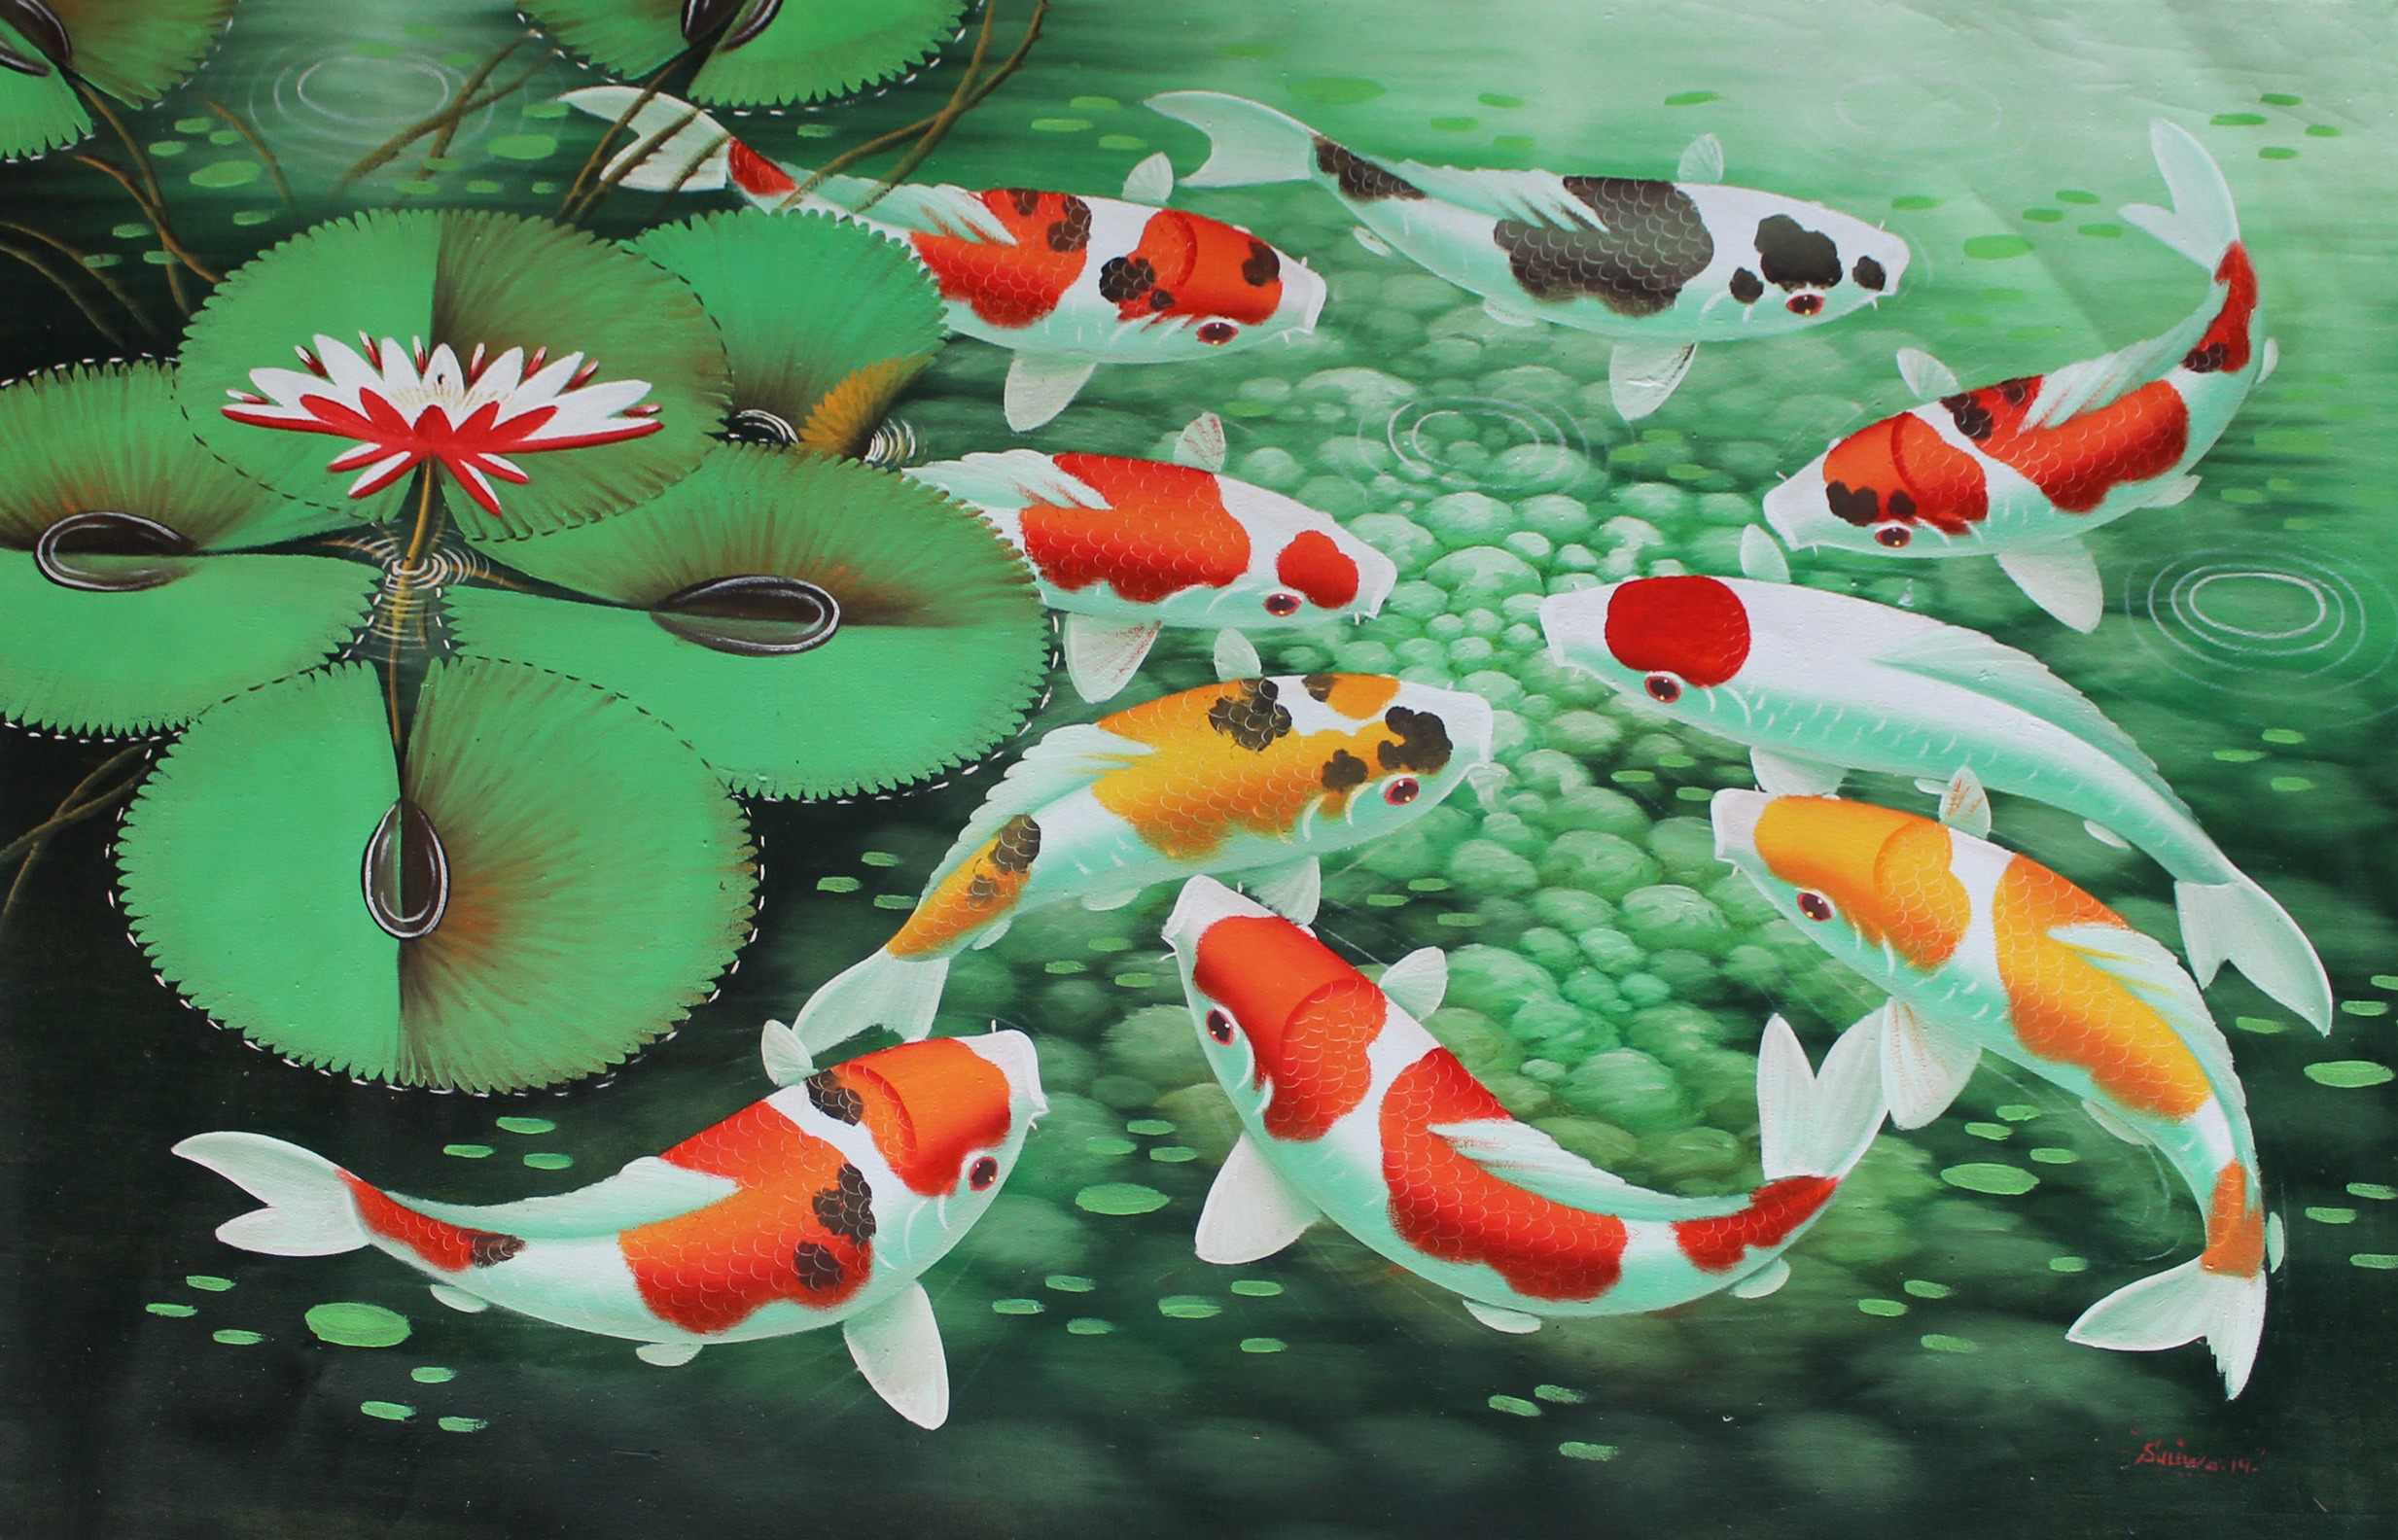 Koi live wallpaper for pc 41 images - Carp wallpaper iphone ...